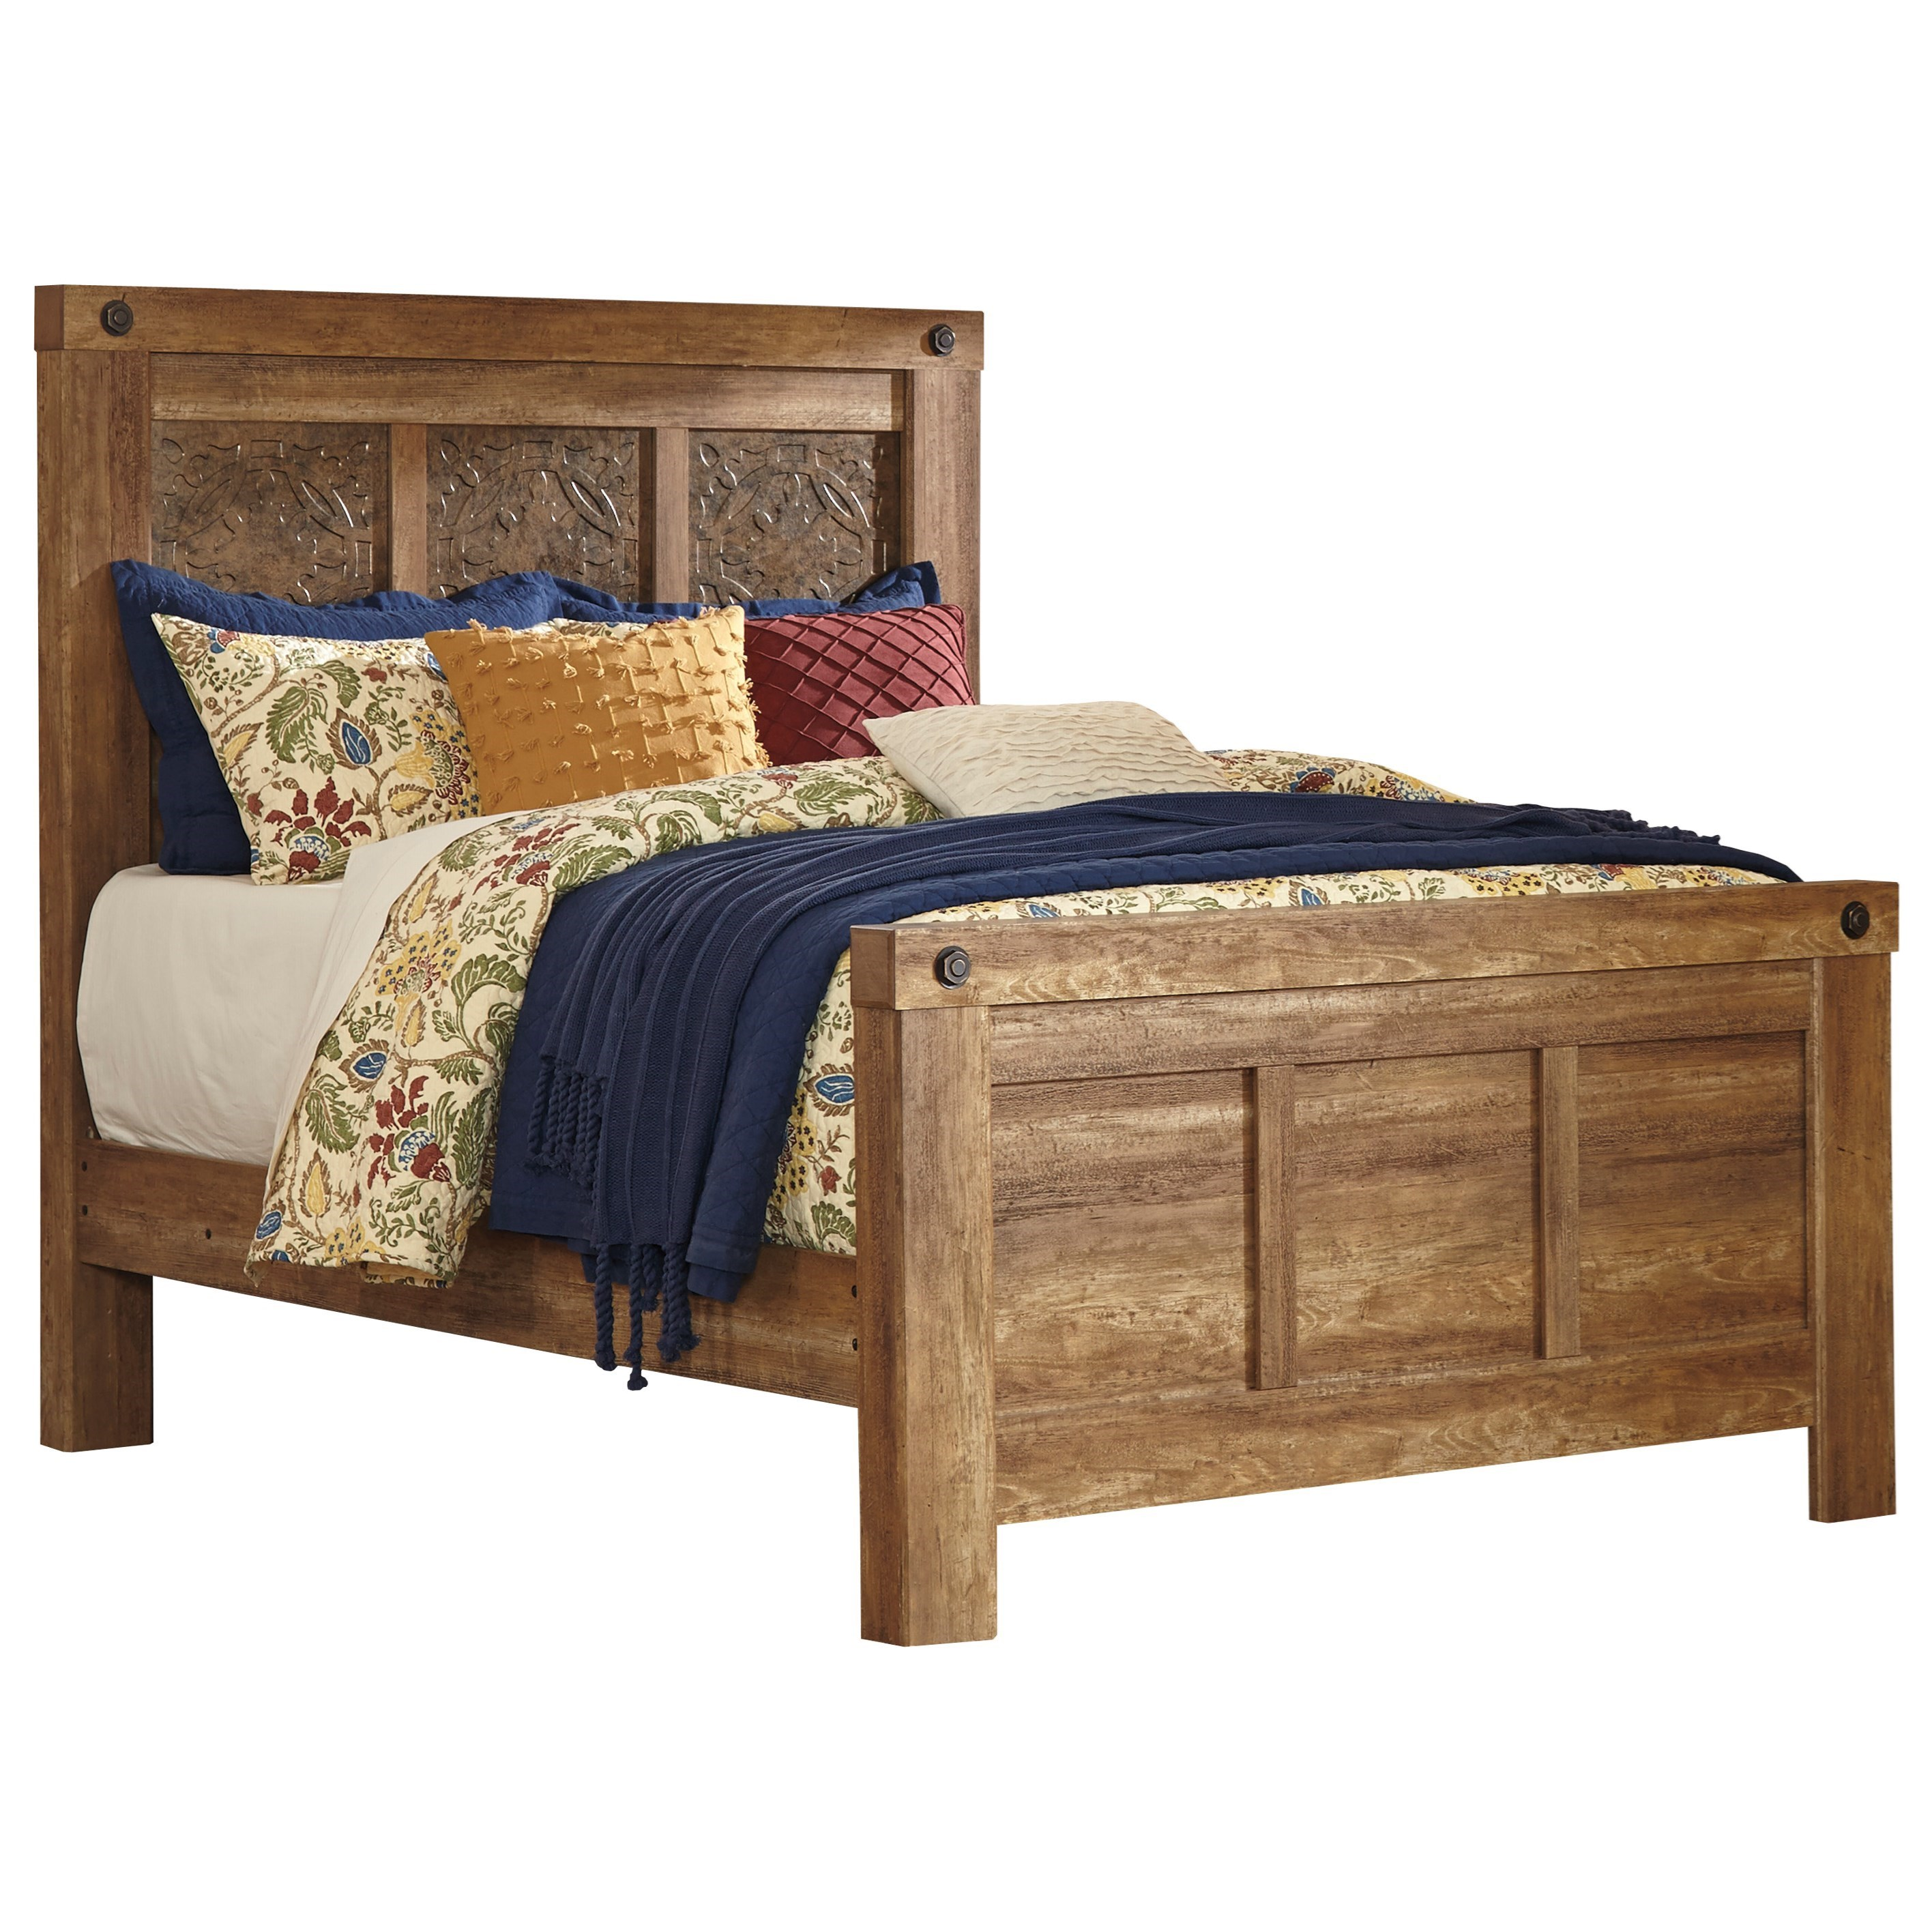 Signature Design by Ashley Ladimier Queen Mansion Bed - Item Number: B399-57+54+98